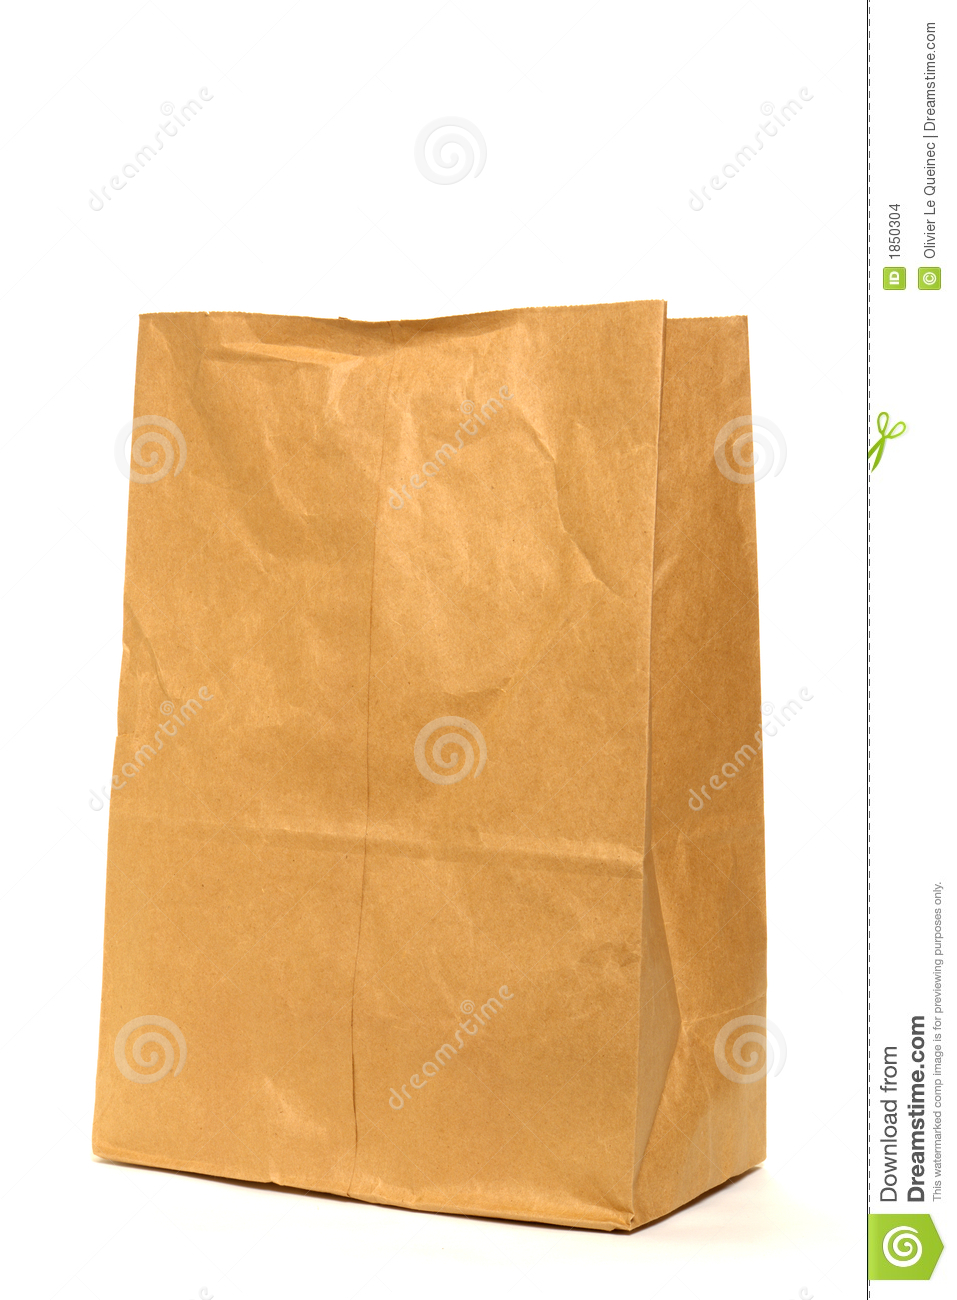 Paper Bag Clip Art Brown recycled paper grocery